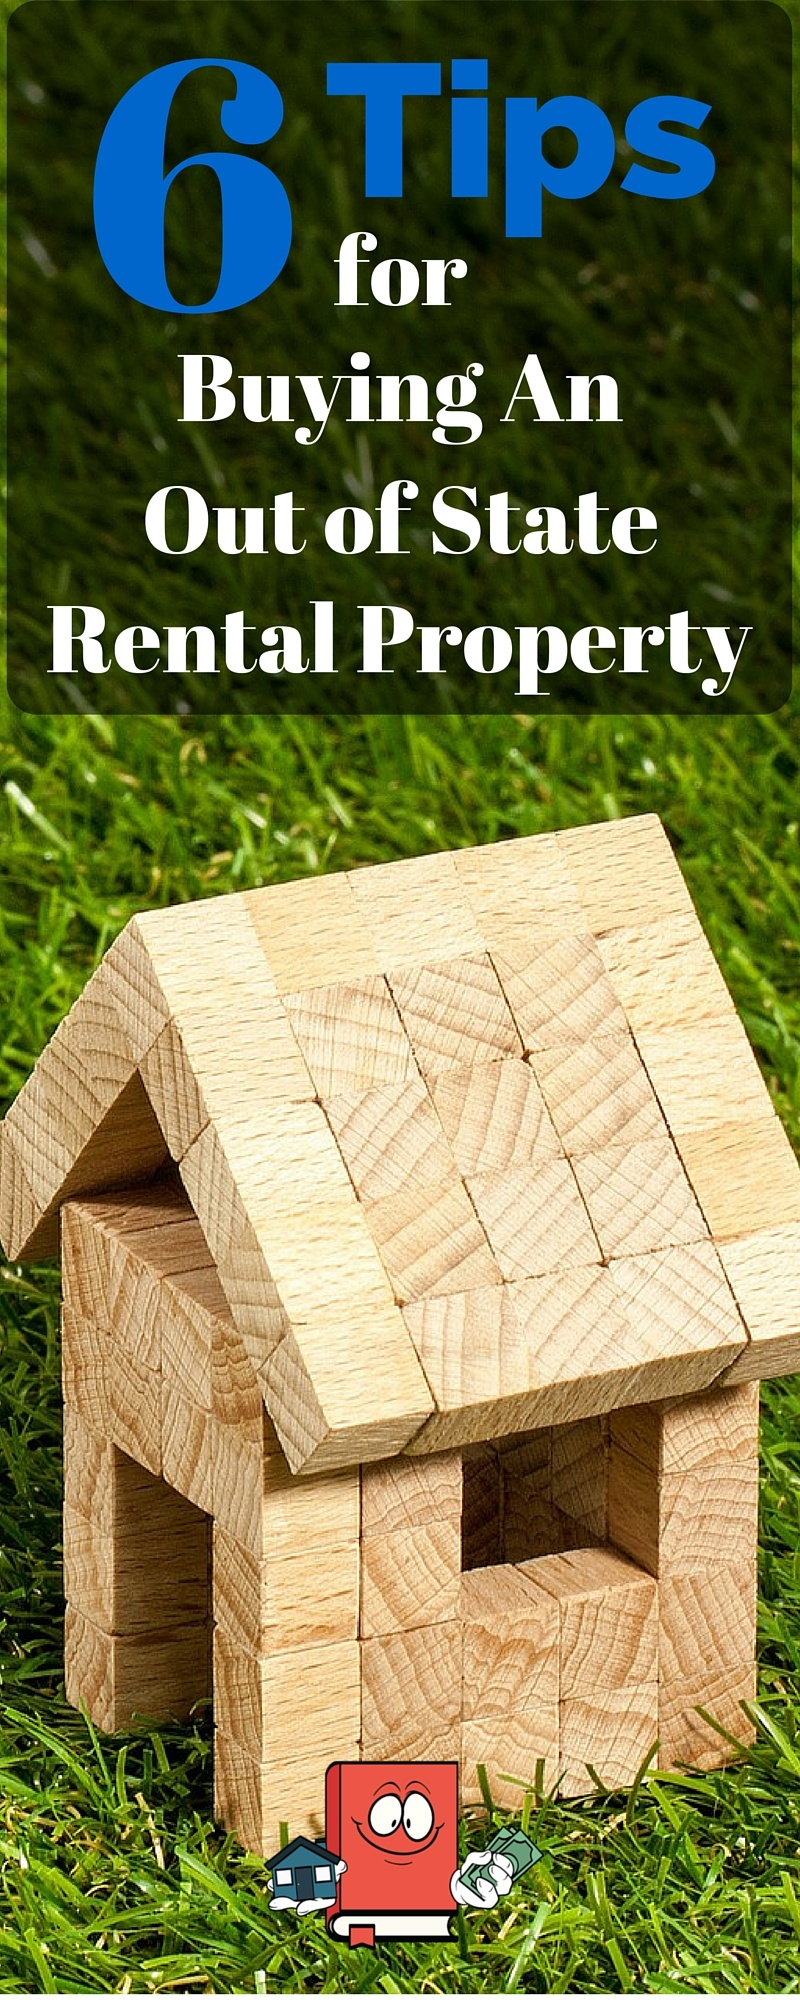 tips for buying out of state rental property